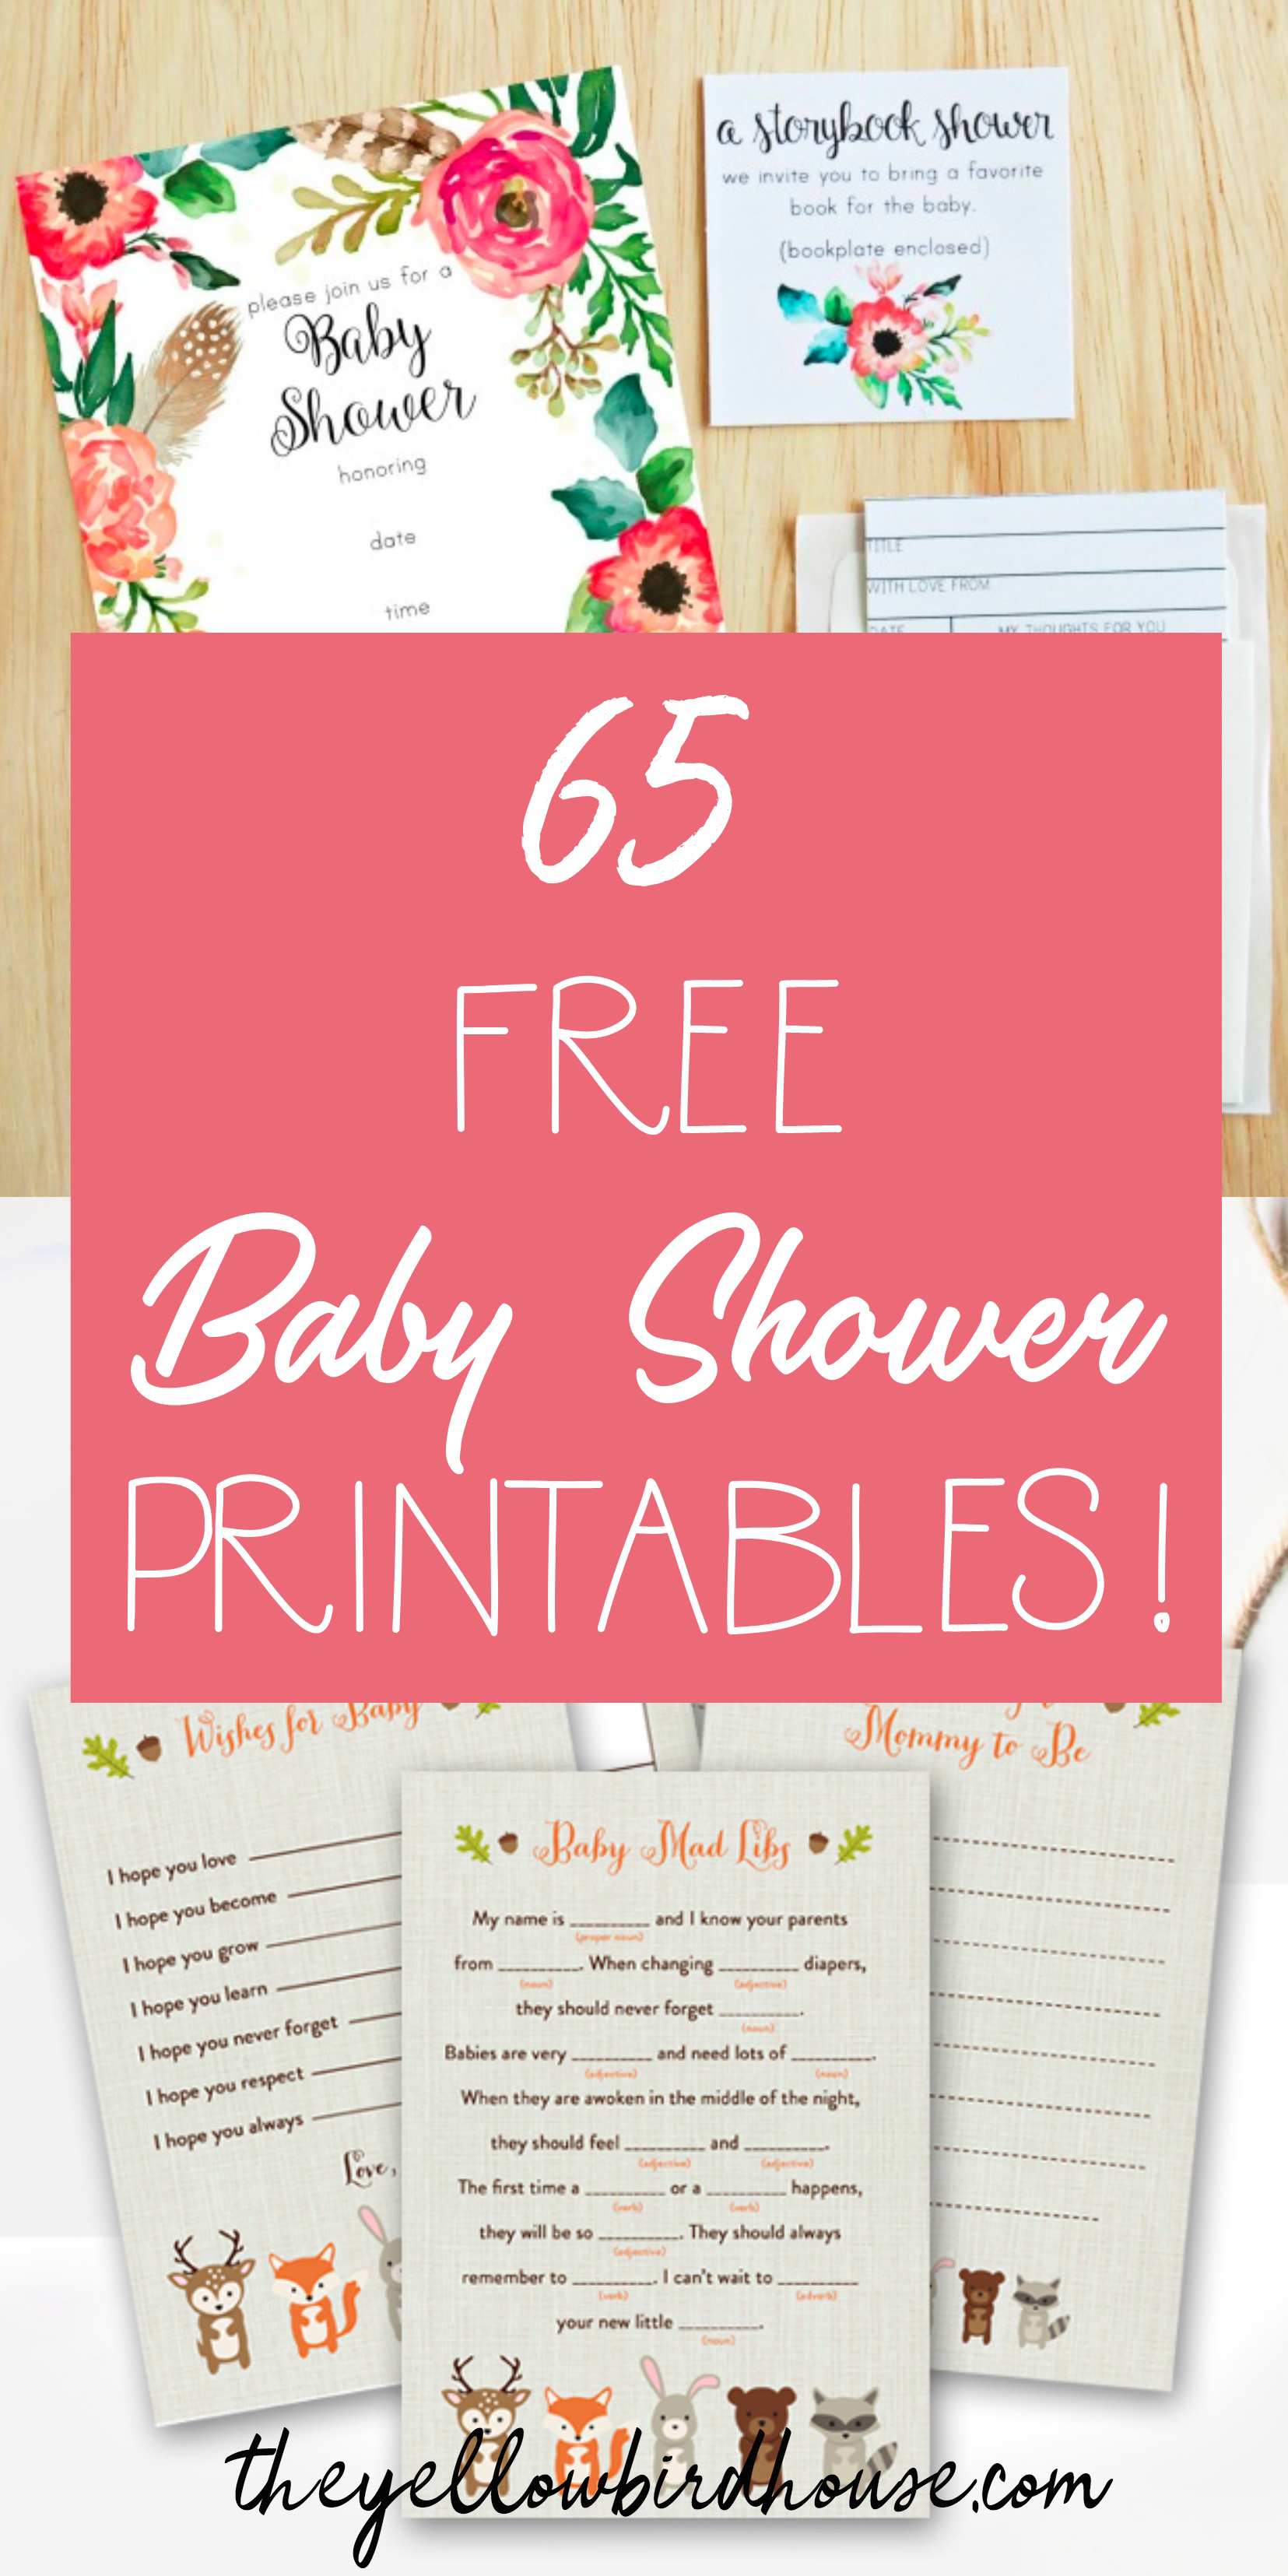 65 Free Baby Shower Printables For An Adorable Party - Woodland Baby Shower Games Free Printables